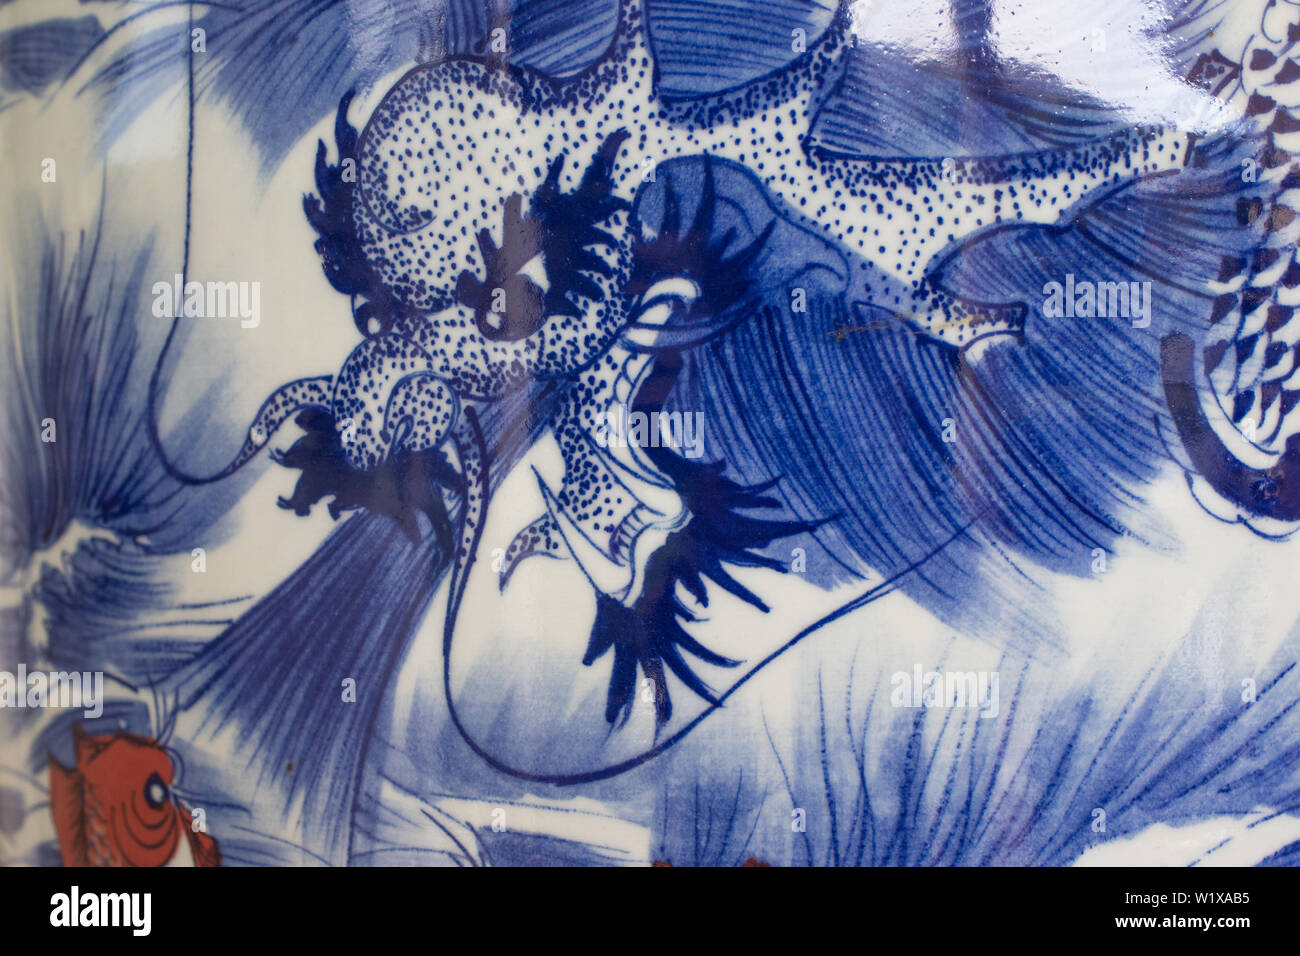 Chinese or Asian artistic  blue and white depiction of a dragon and Koi fish on a glossy or shiny ceramic surface of an urn or vase close up - Stock Image